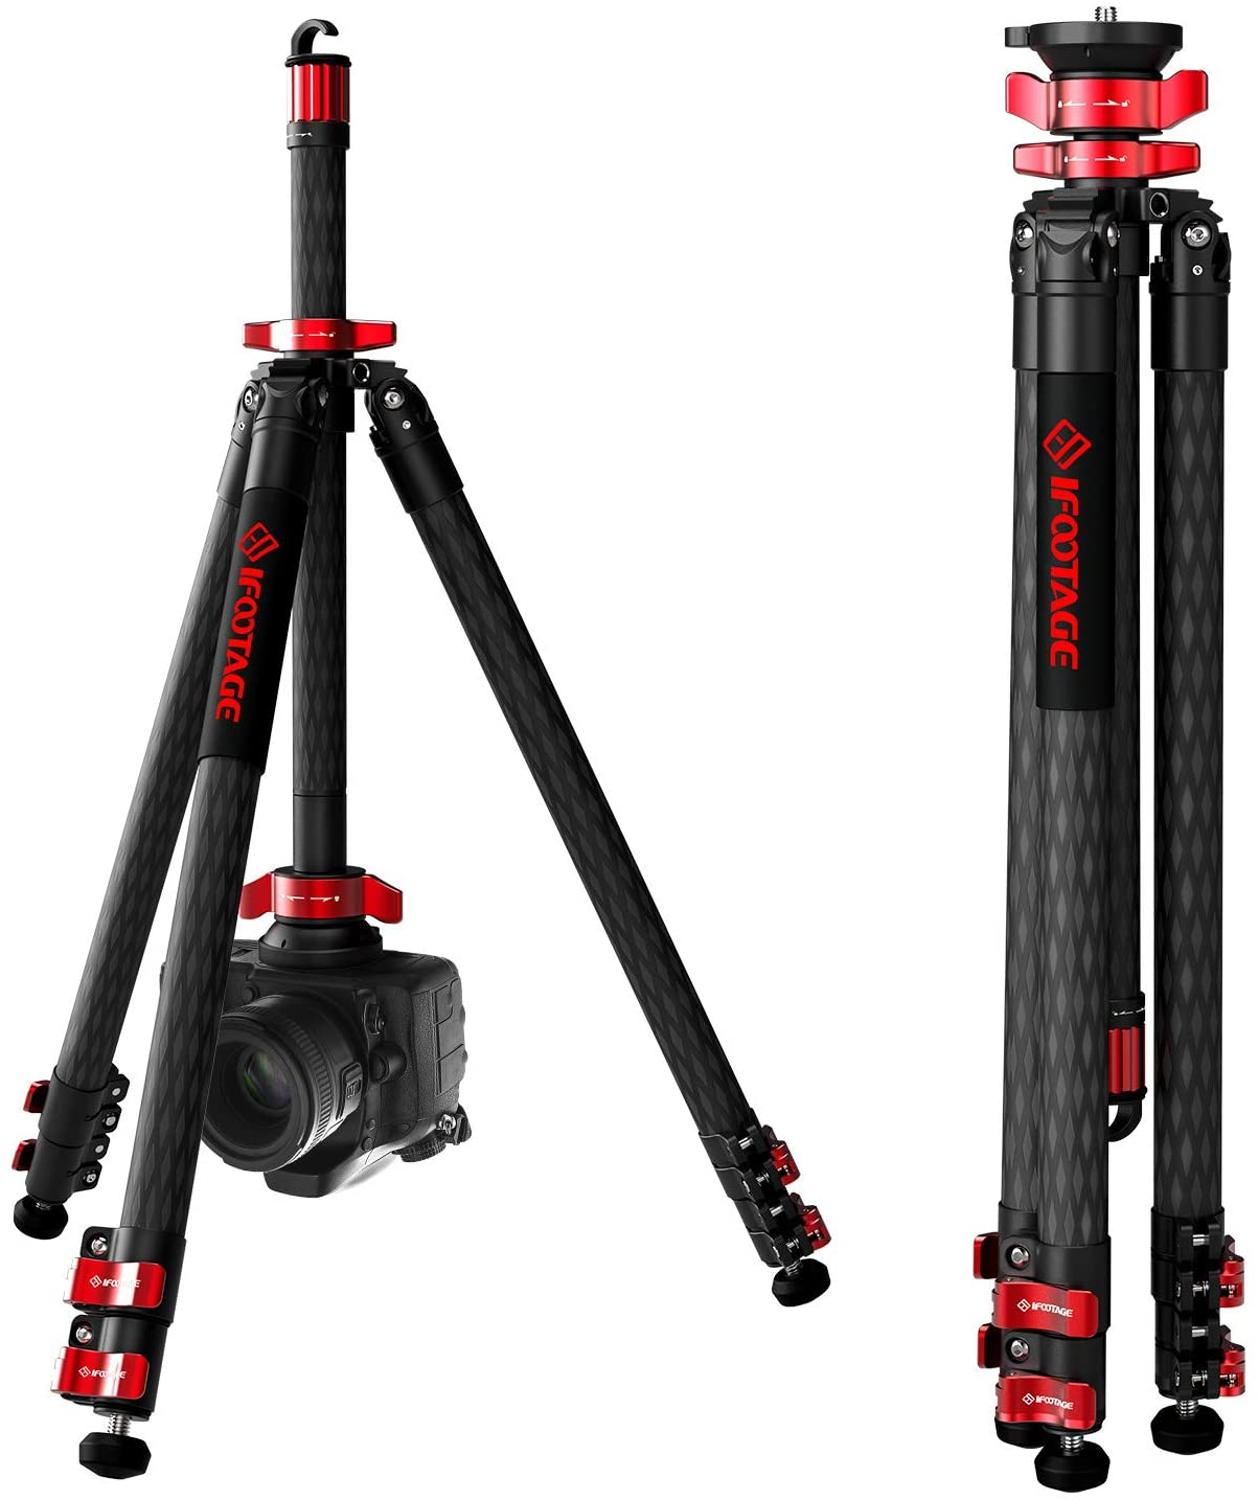 IFOOTAGE Gazelle series TA5&TC5&TA6&TC6 travel Professional Tripod carbon fiber camera tripods 3 sections for SONY CANON DSLR image